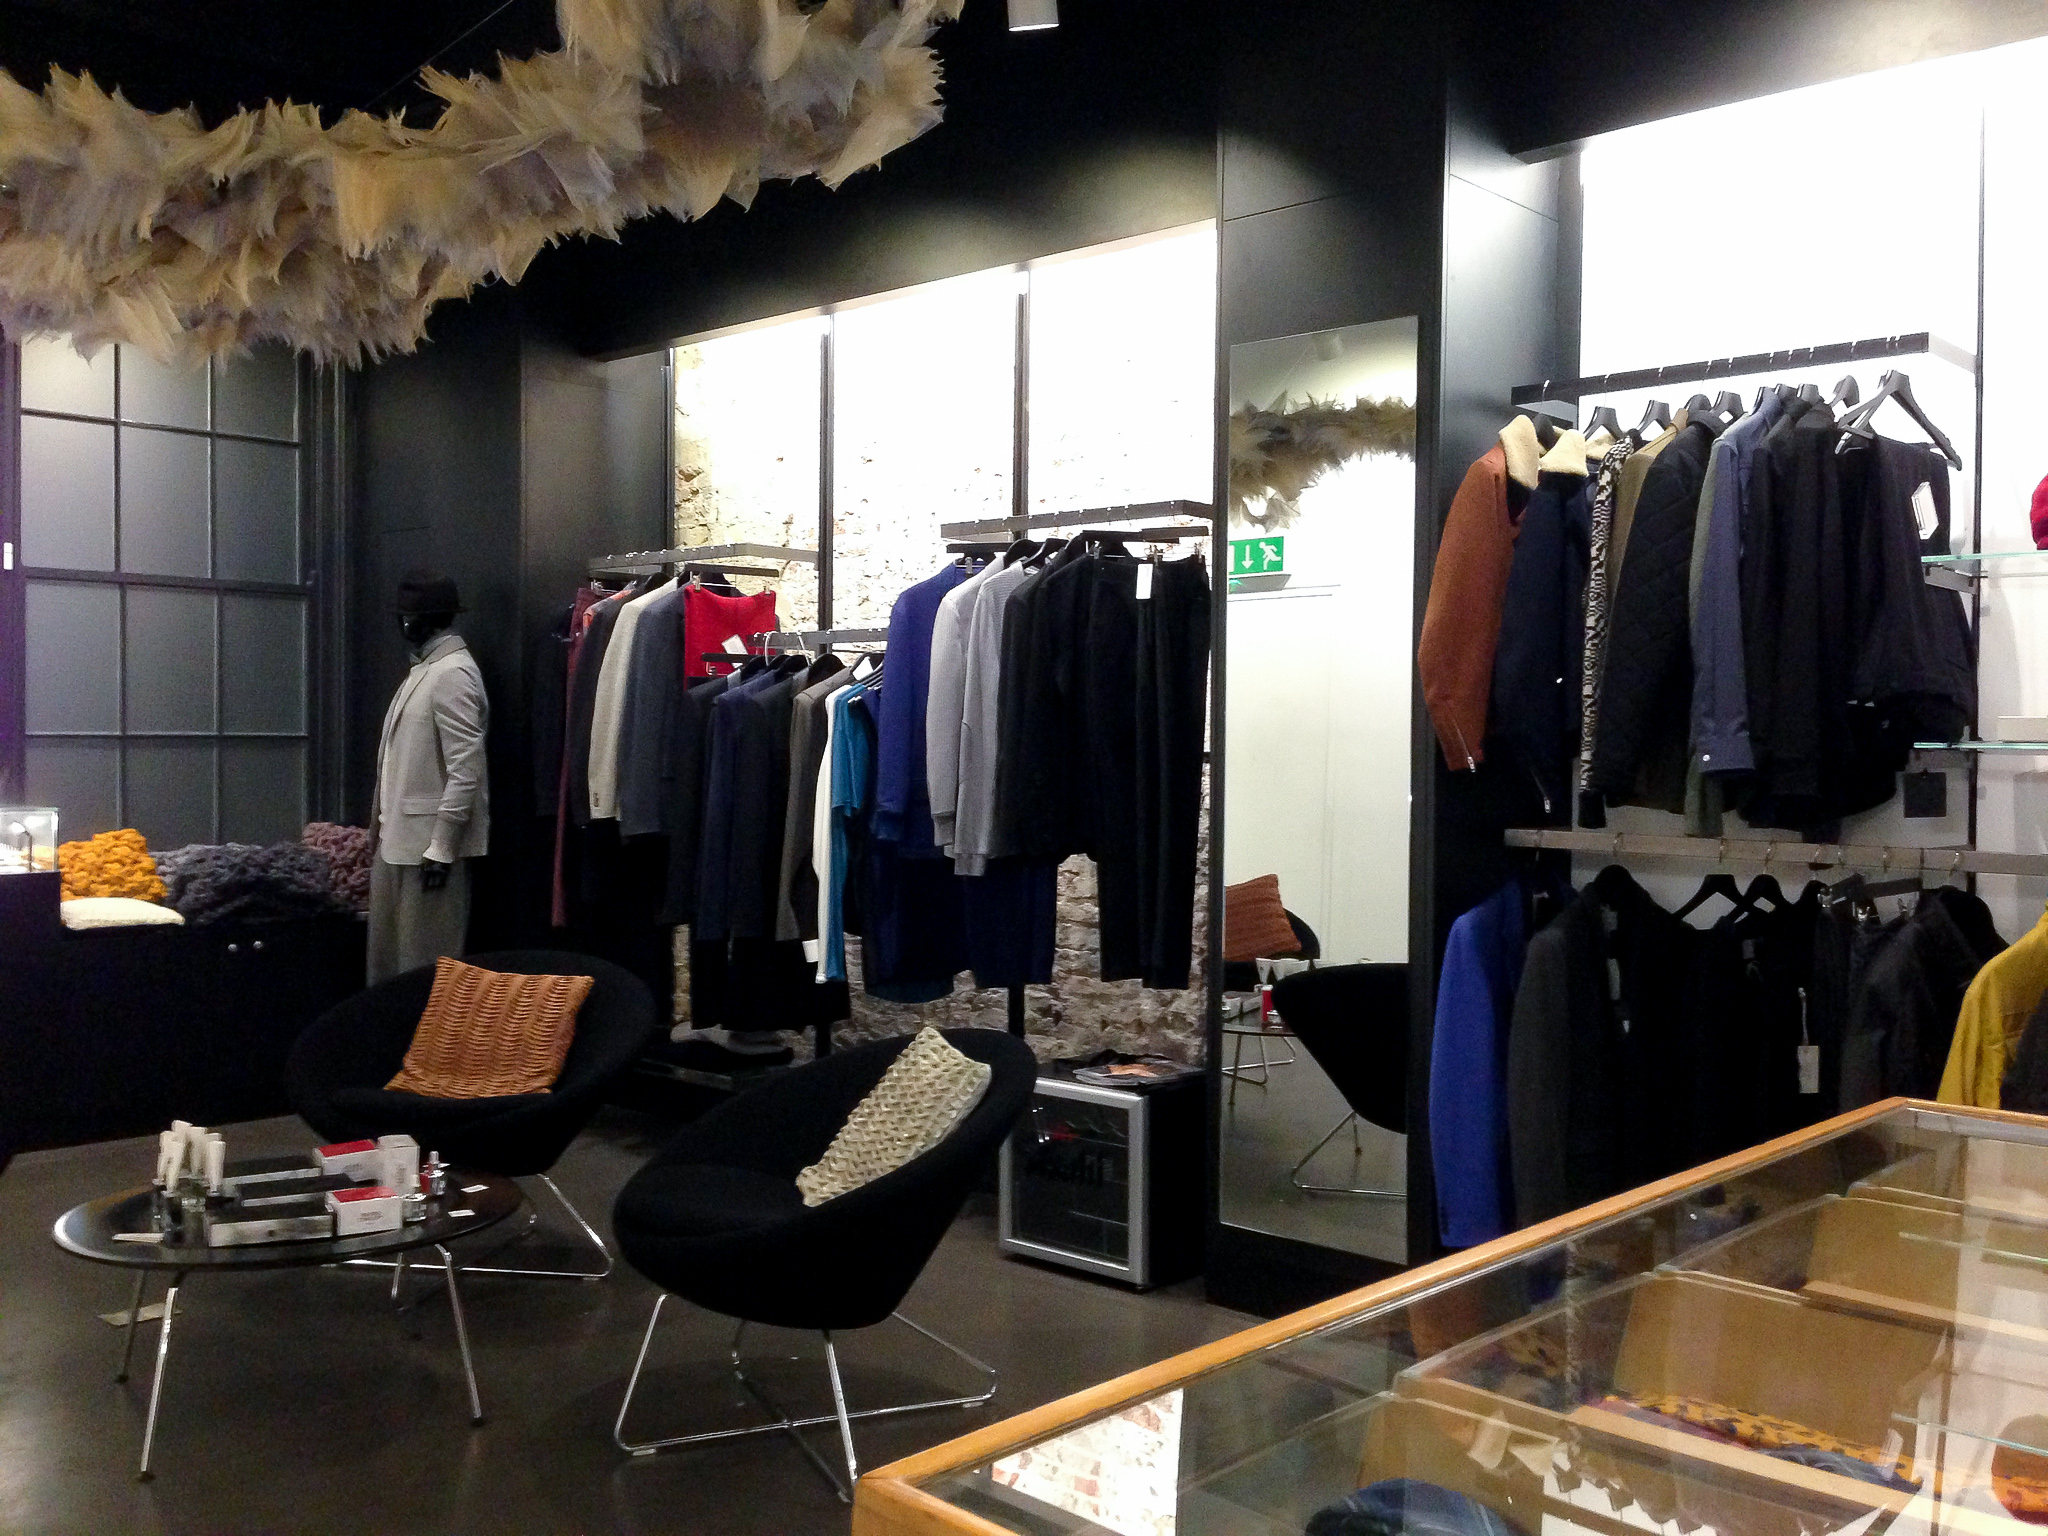 Fashion display at Wolf & Badger in London. Photo by alphacityguides.